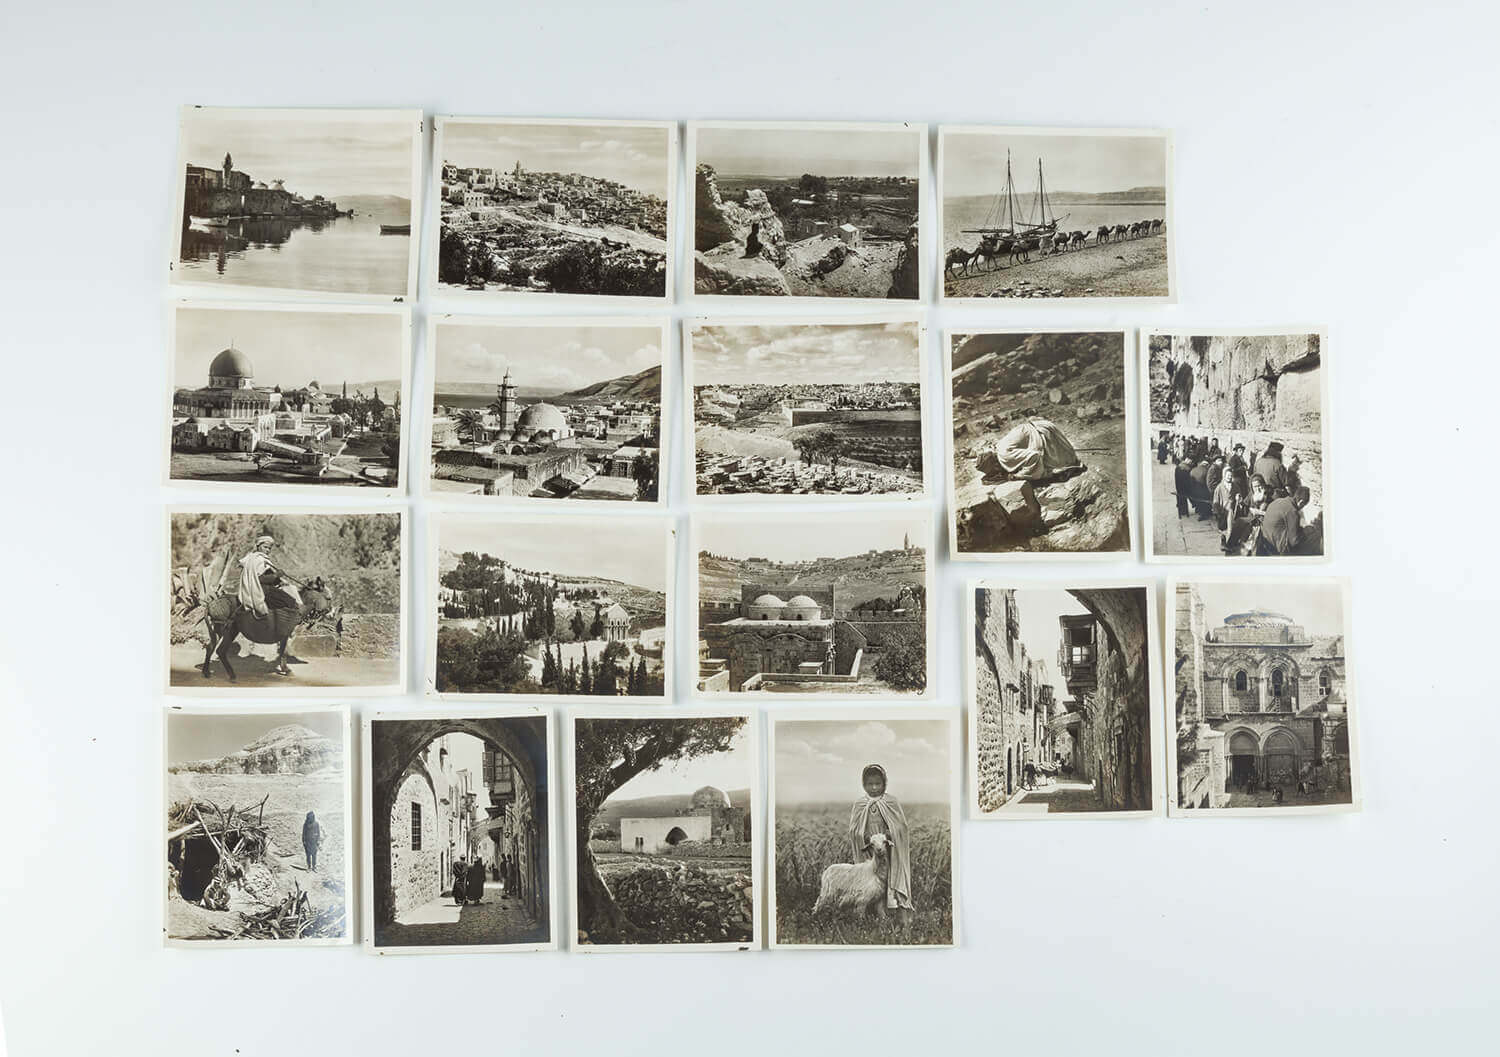 114. A GROUP OF 34 ORIGINAL BLACK AND WHITE PHOTOGRAPHS OF EARLY PALESTINE